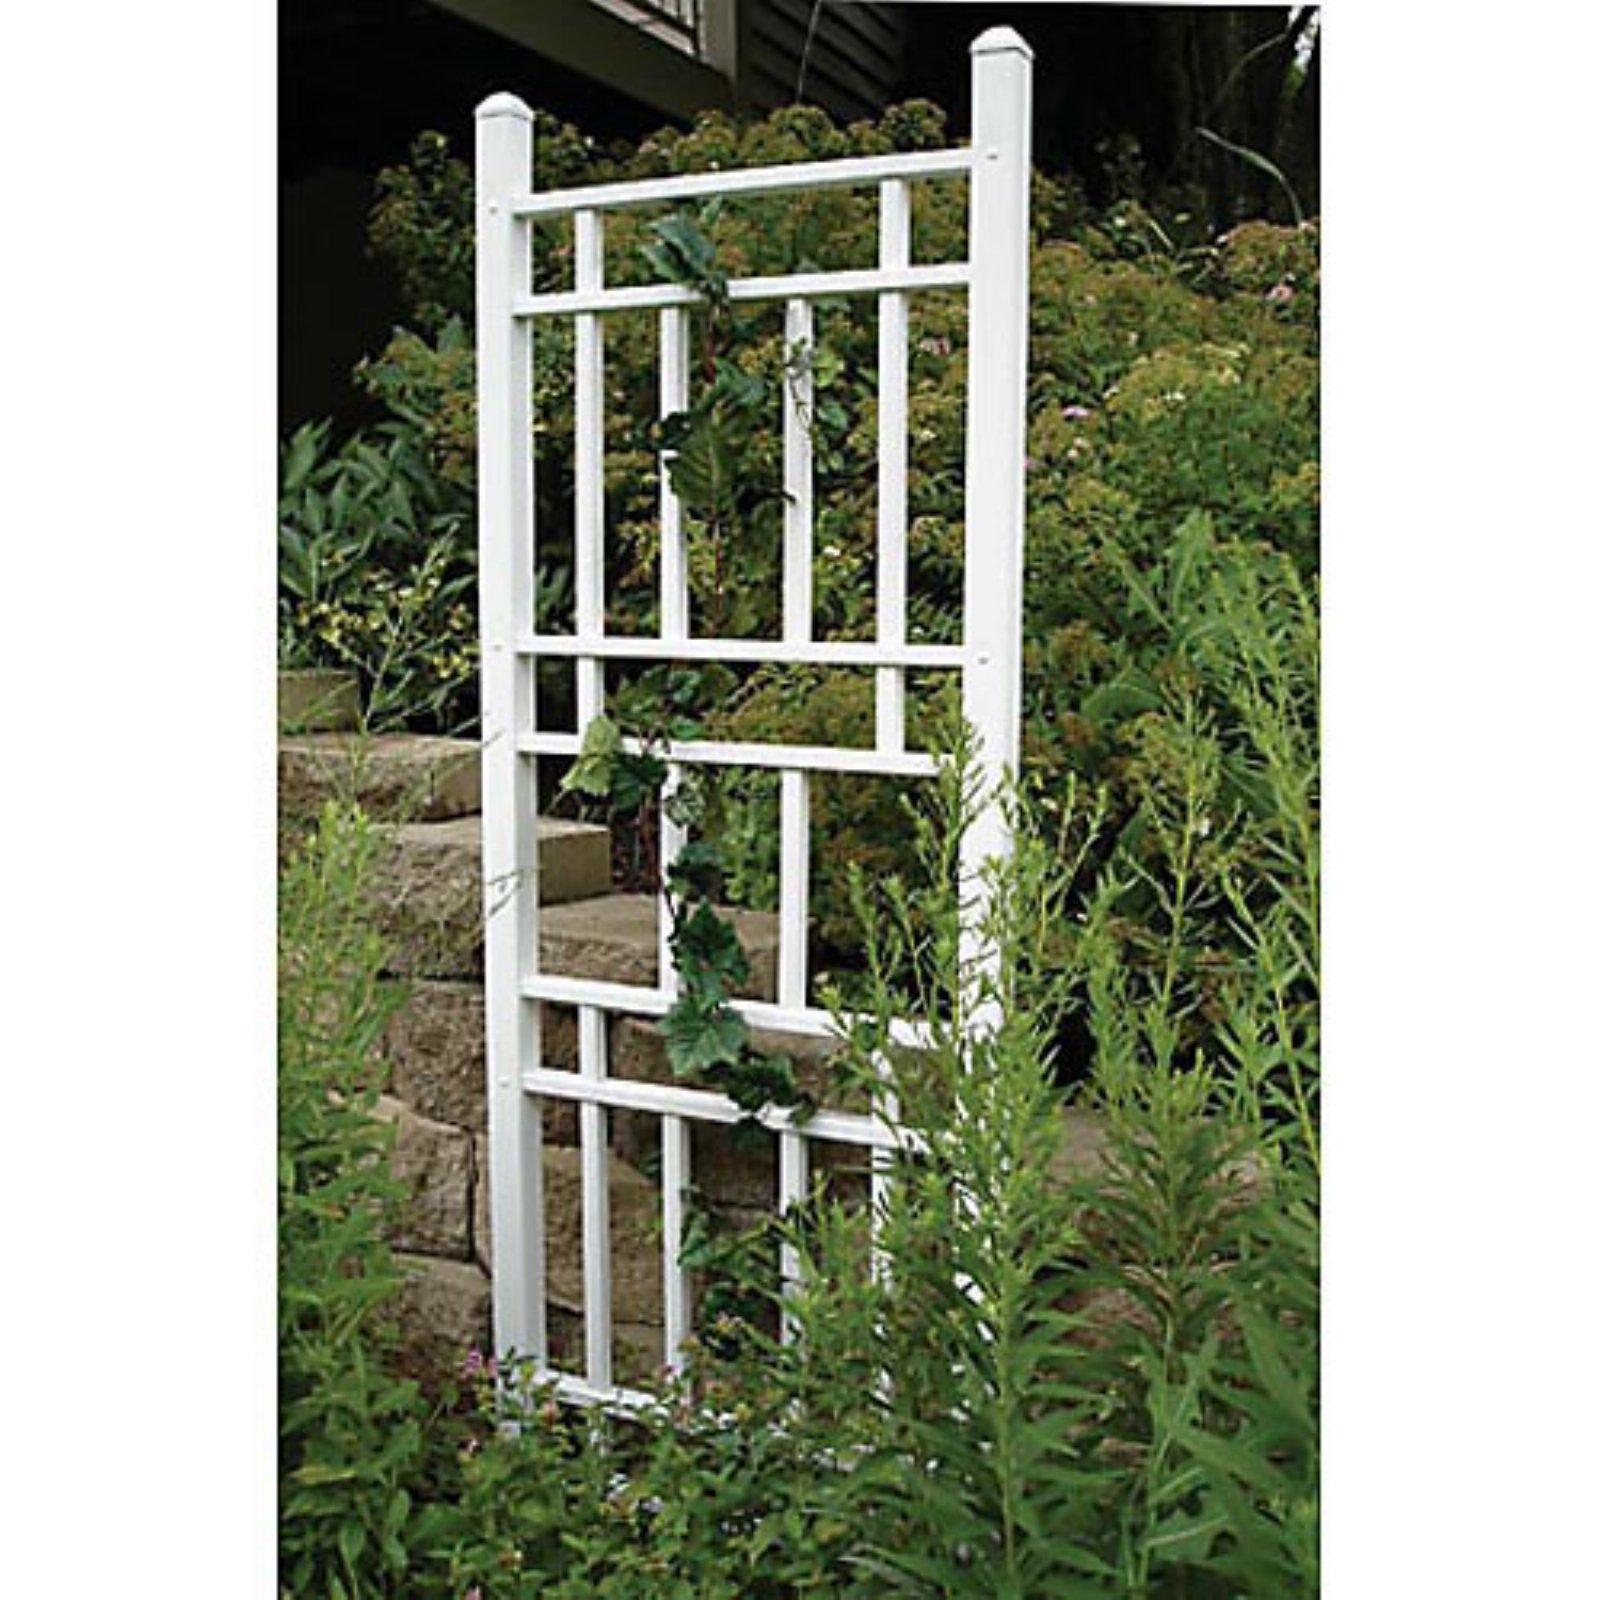 Dura-Trel Wellington 6.25-ft. Vinyl Wall Trellis White by Dura-Trel